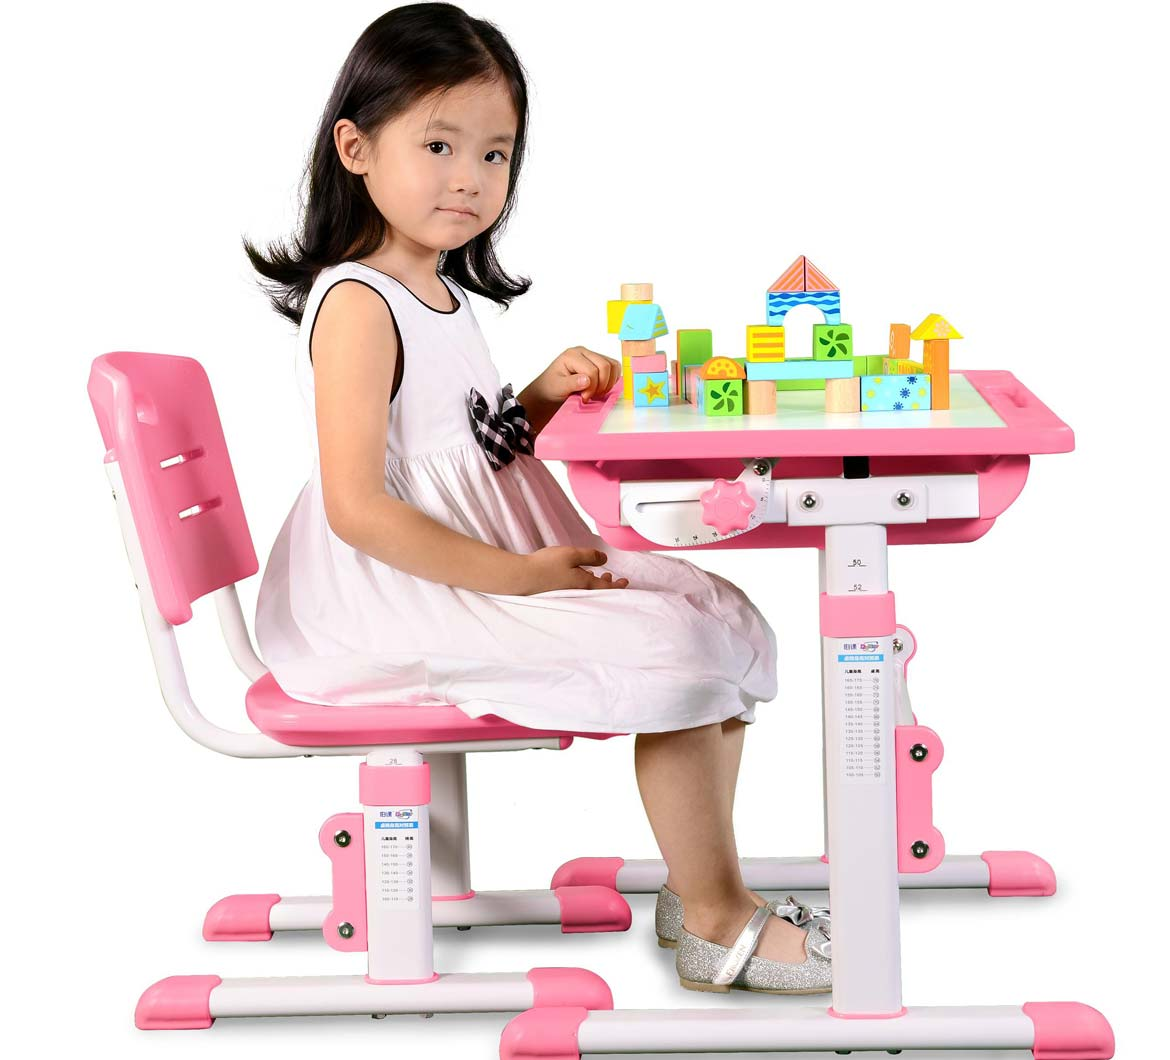 ergonomic-kids-table-adjustable-portfolio-midi-pink-desk-for-girls-1